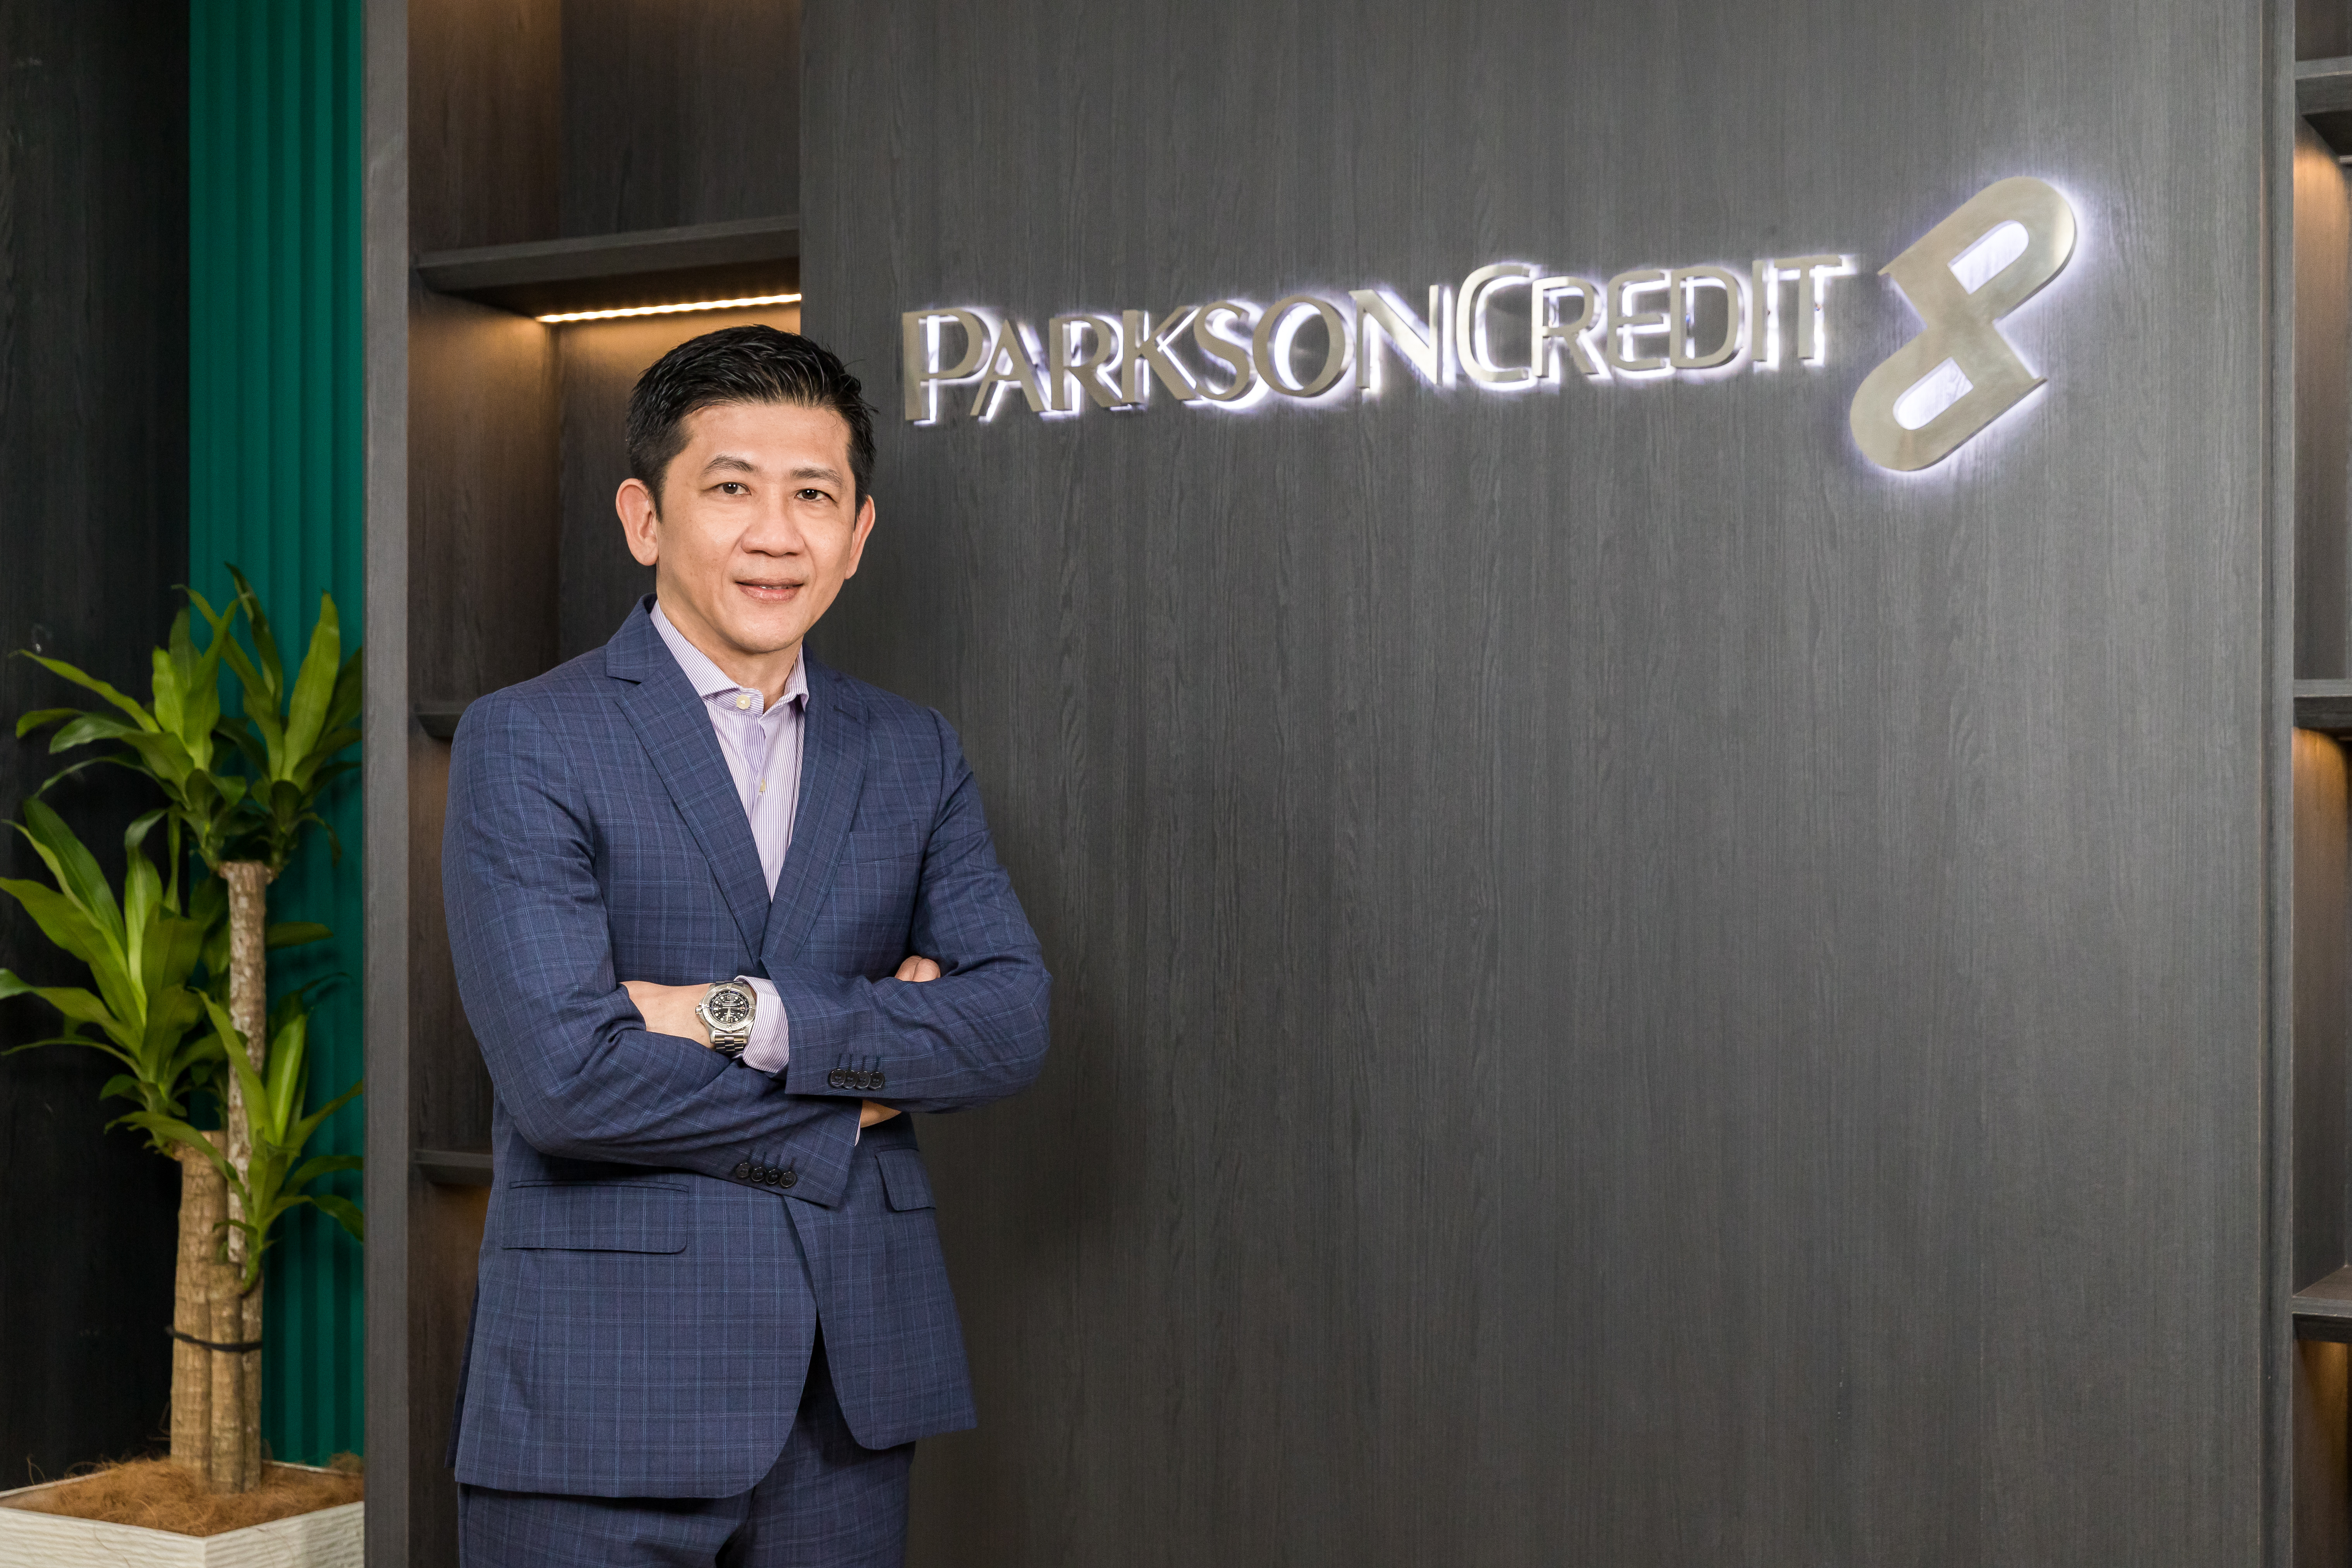 Parkson Credit Corporate Overview